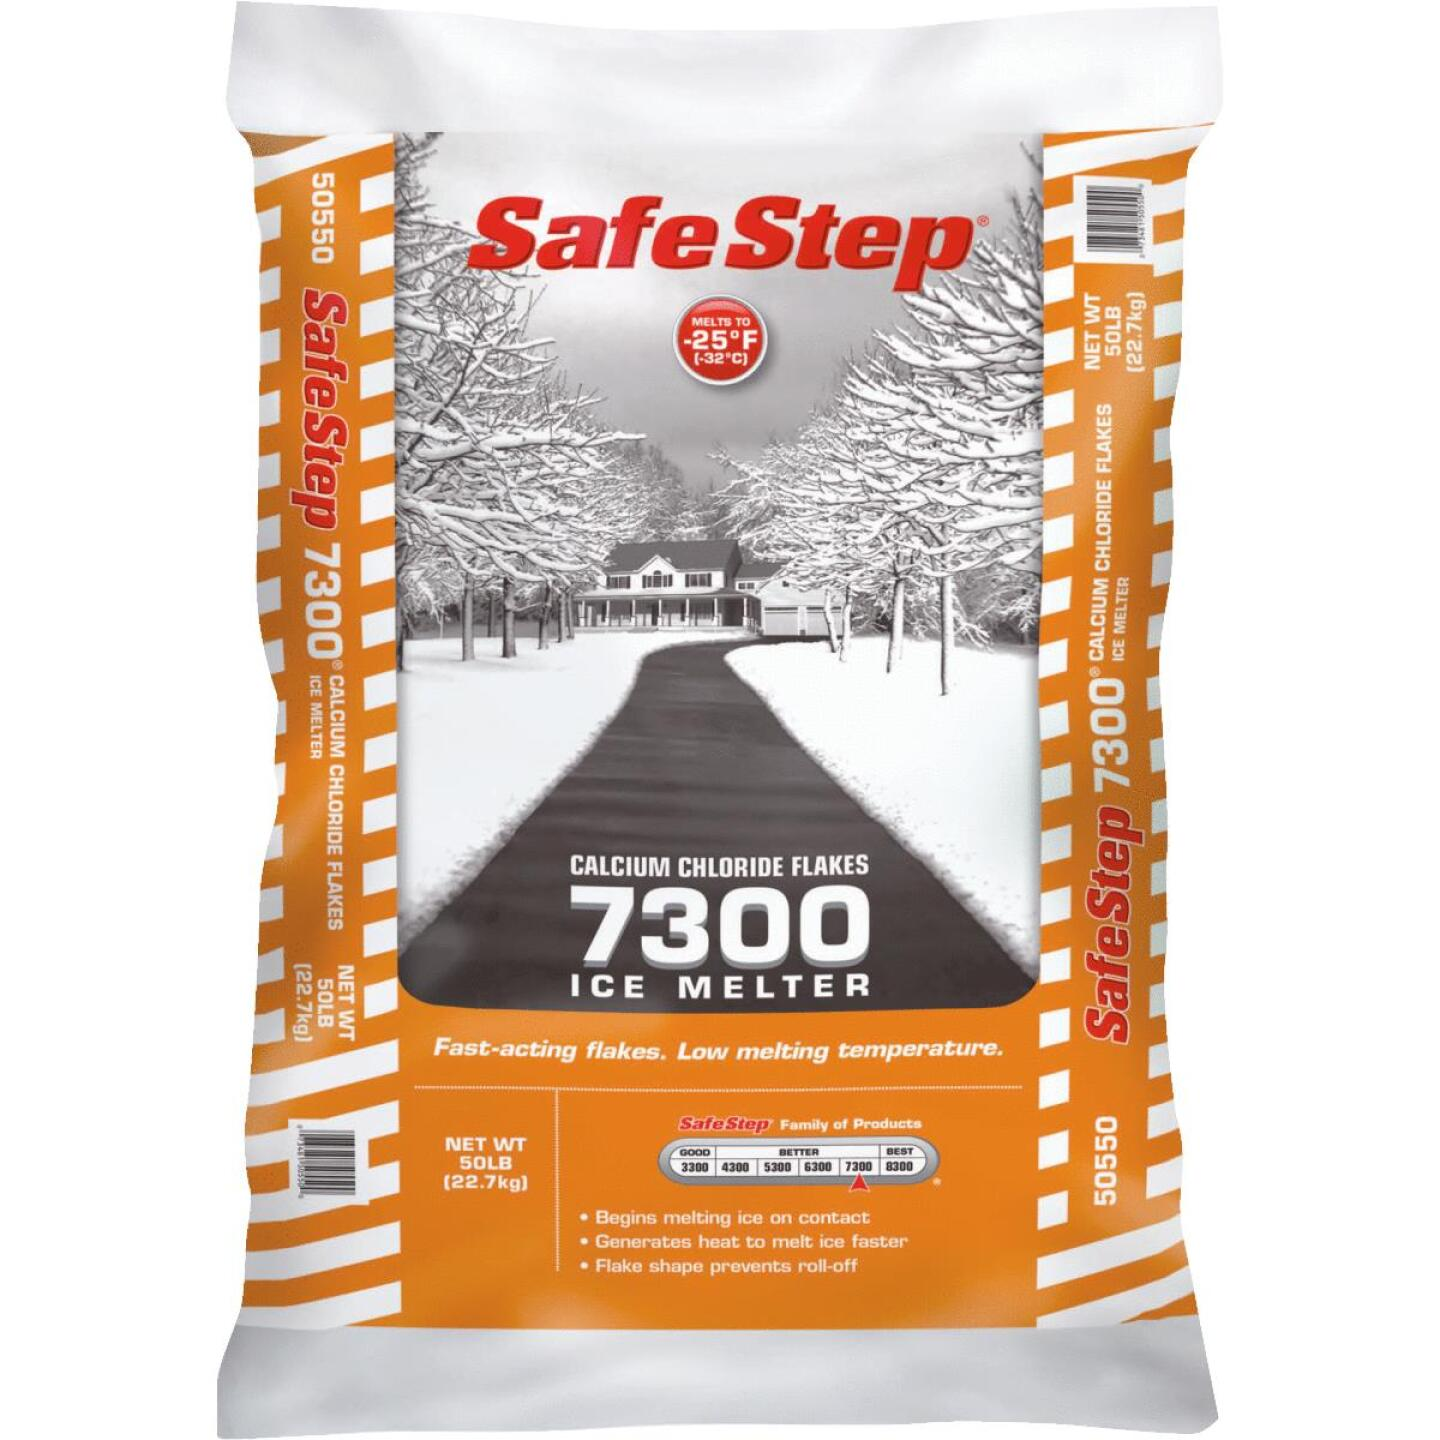 Safe Step 7300 50 Lb. Calcium Chloride Ice Melt Flakes Image 1